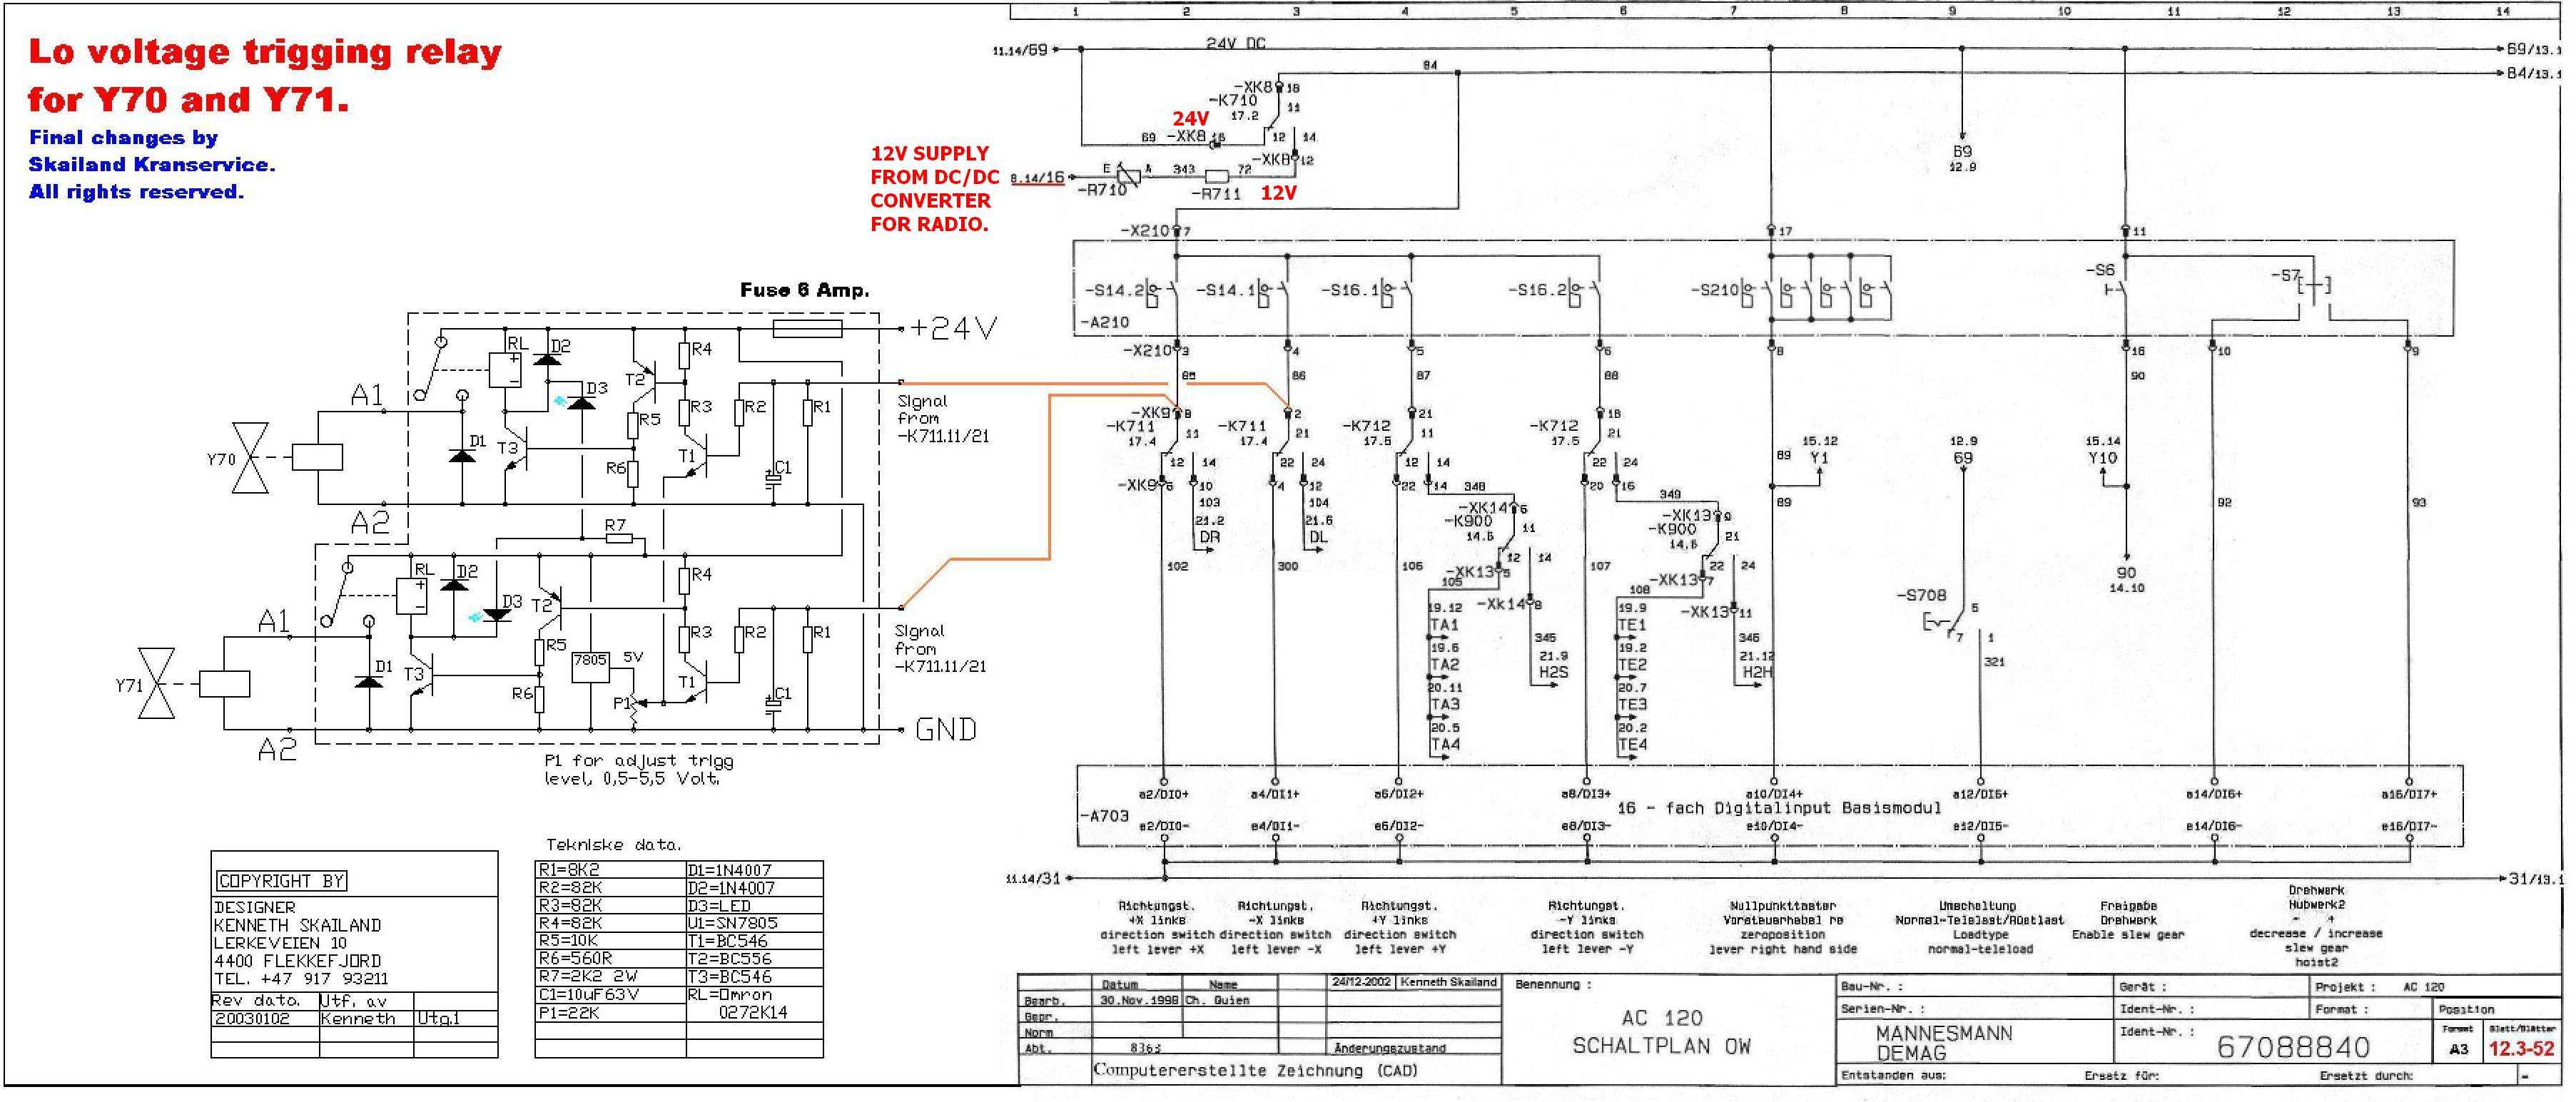 cm hoist wiring diagram Collection-Demag Hoist Wiring Diagram For B12 3 To Overhead Crane 13-n